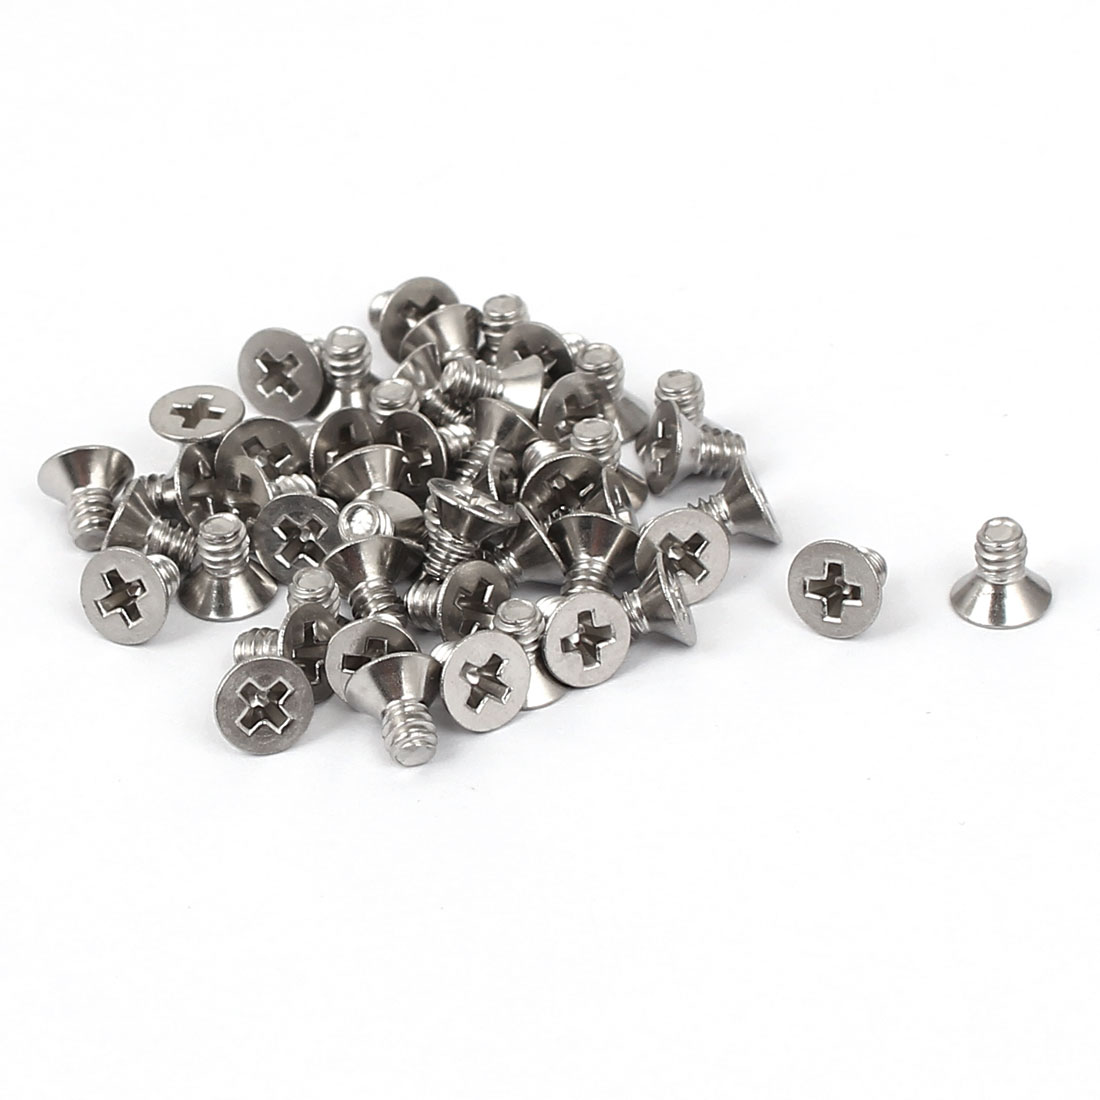 "4#-40x3/16"" Stainless Steel Phillips Flat Countersunk Head Machine Screws 50pcs"